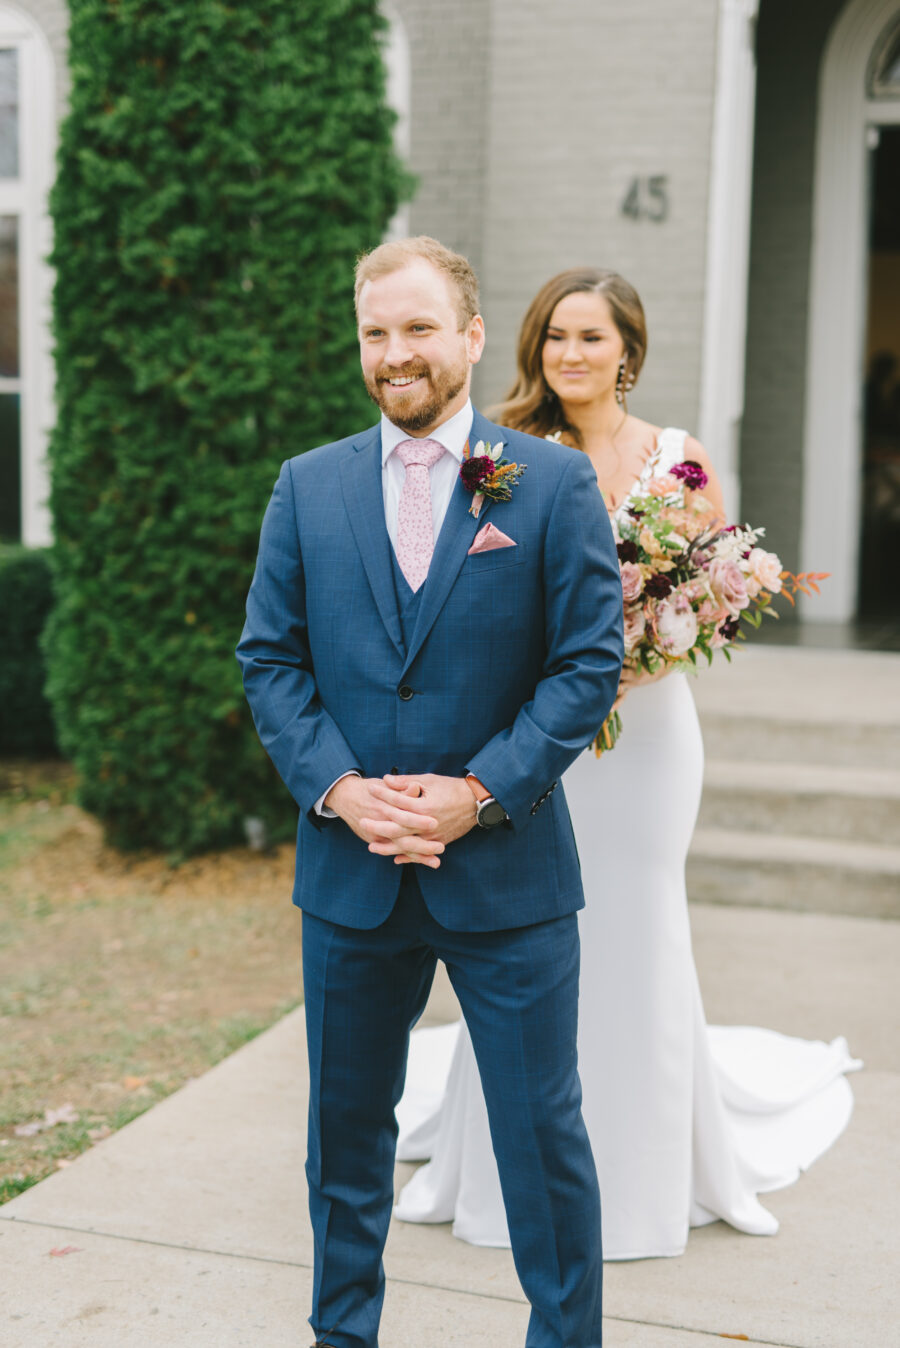 Wedding first look at The Cordelle | Nashville Bride Guide